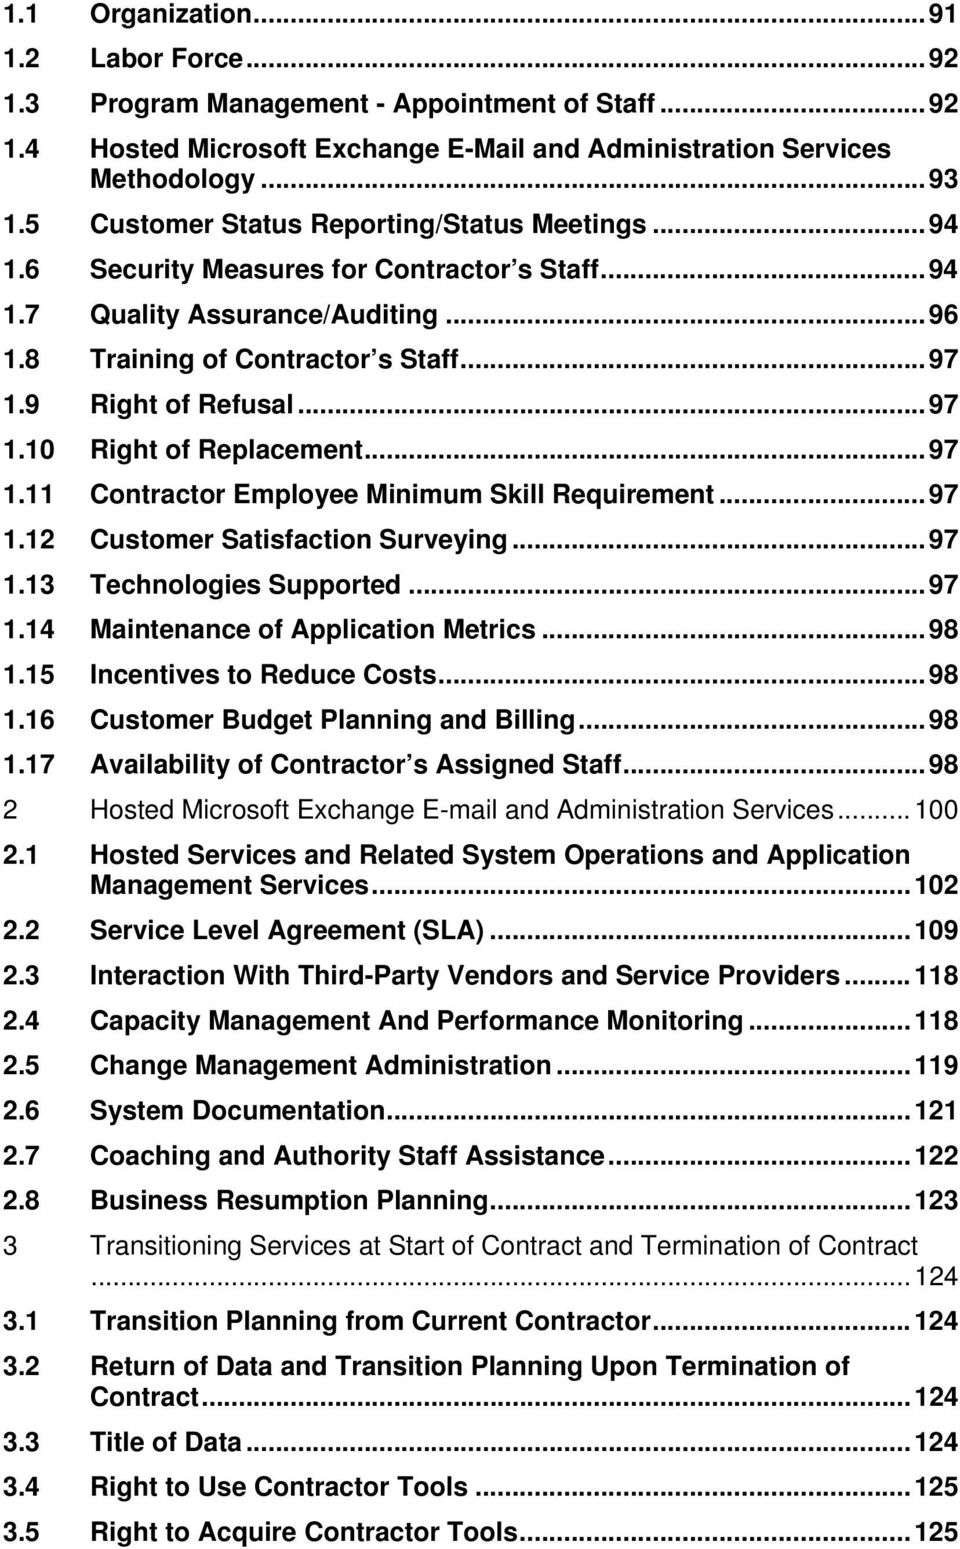 .. 97 1.10 Right of Replacement... 97 1.11 Contractor Employee Minimum Skill Requirement... 97 1.12 Customer Satisfaction Surveying... 97 1.13 Technologies Supported... 97 1.14 Maintenance of Application Metrics.